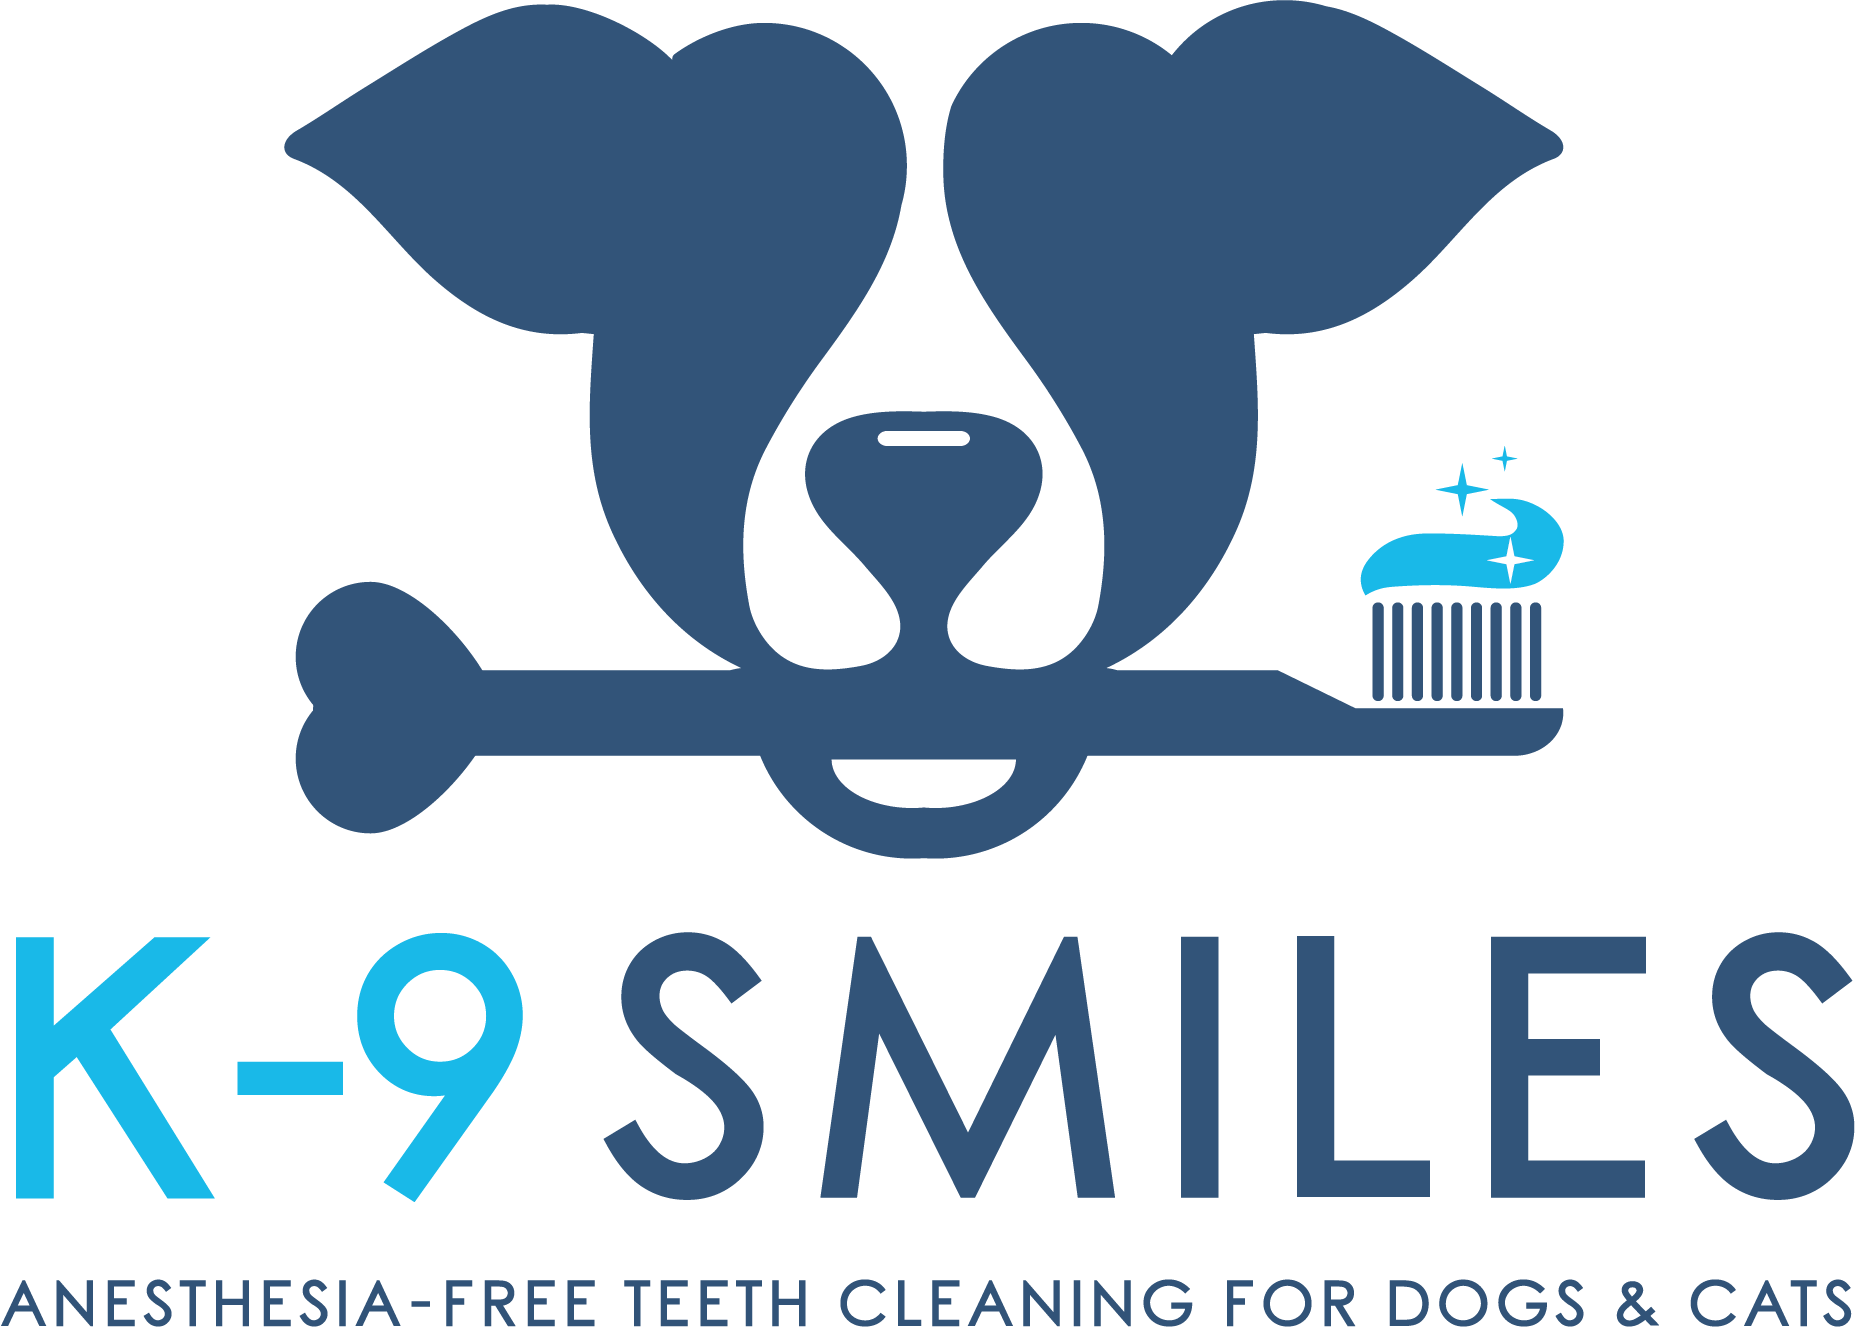 K-9_Smiles_logo_with_tagline.png